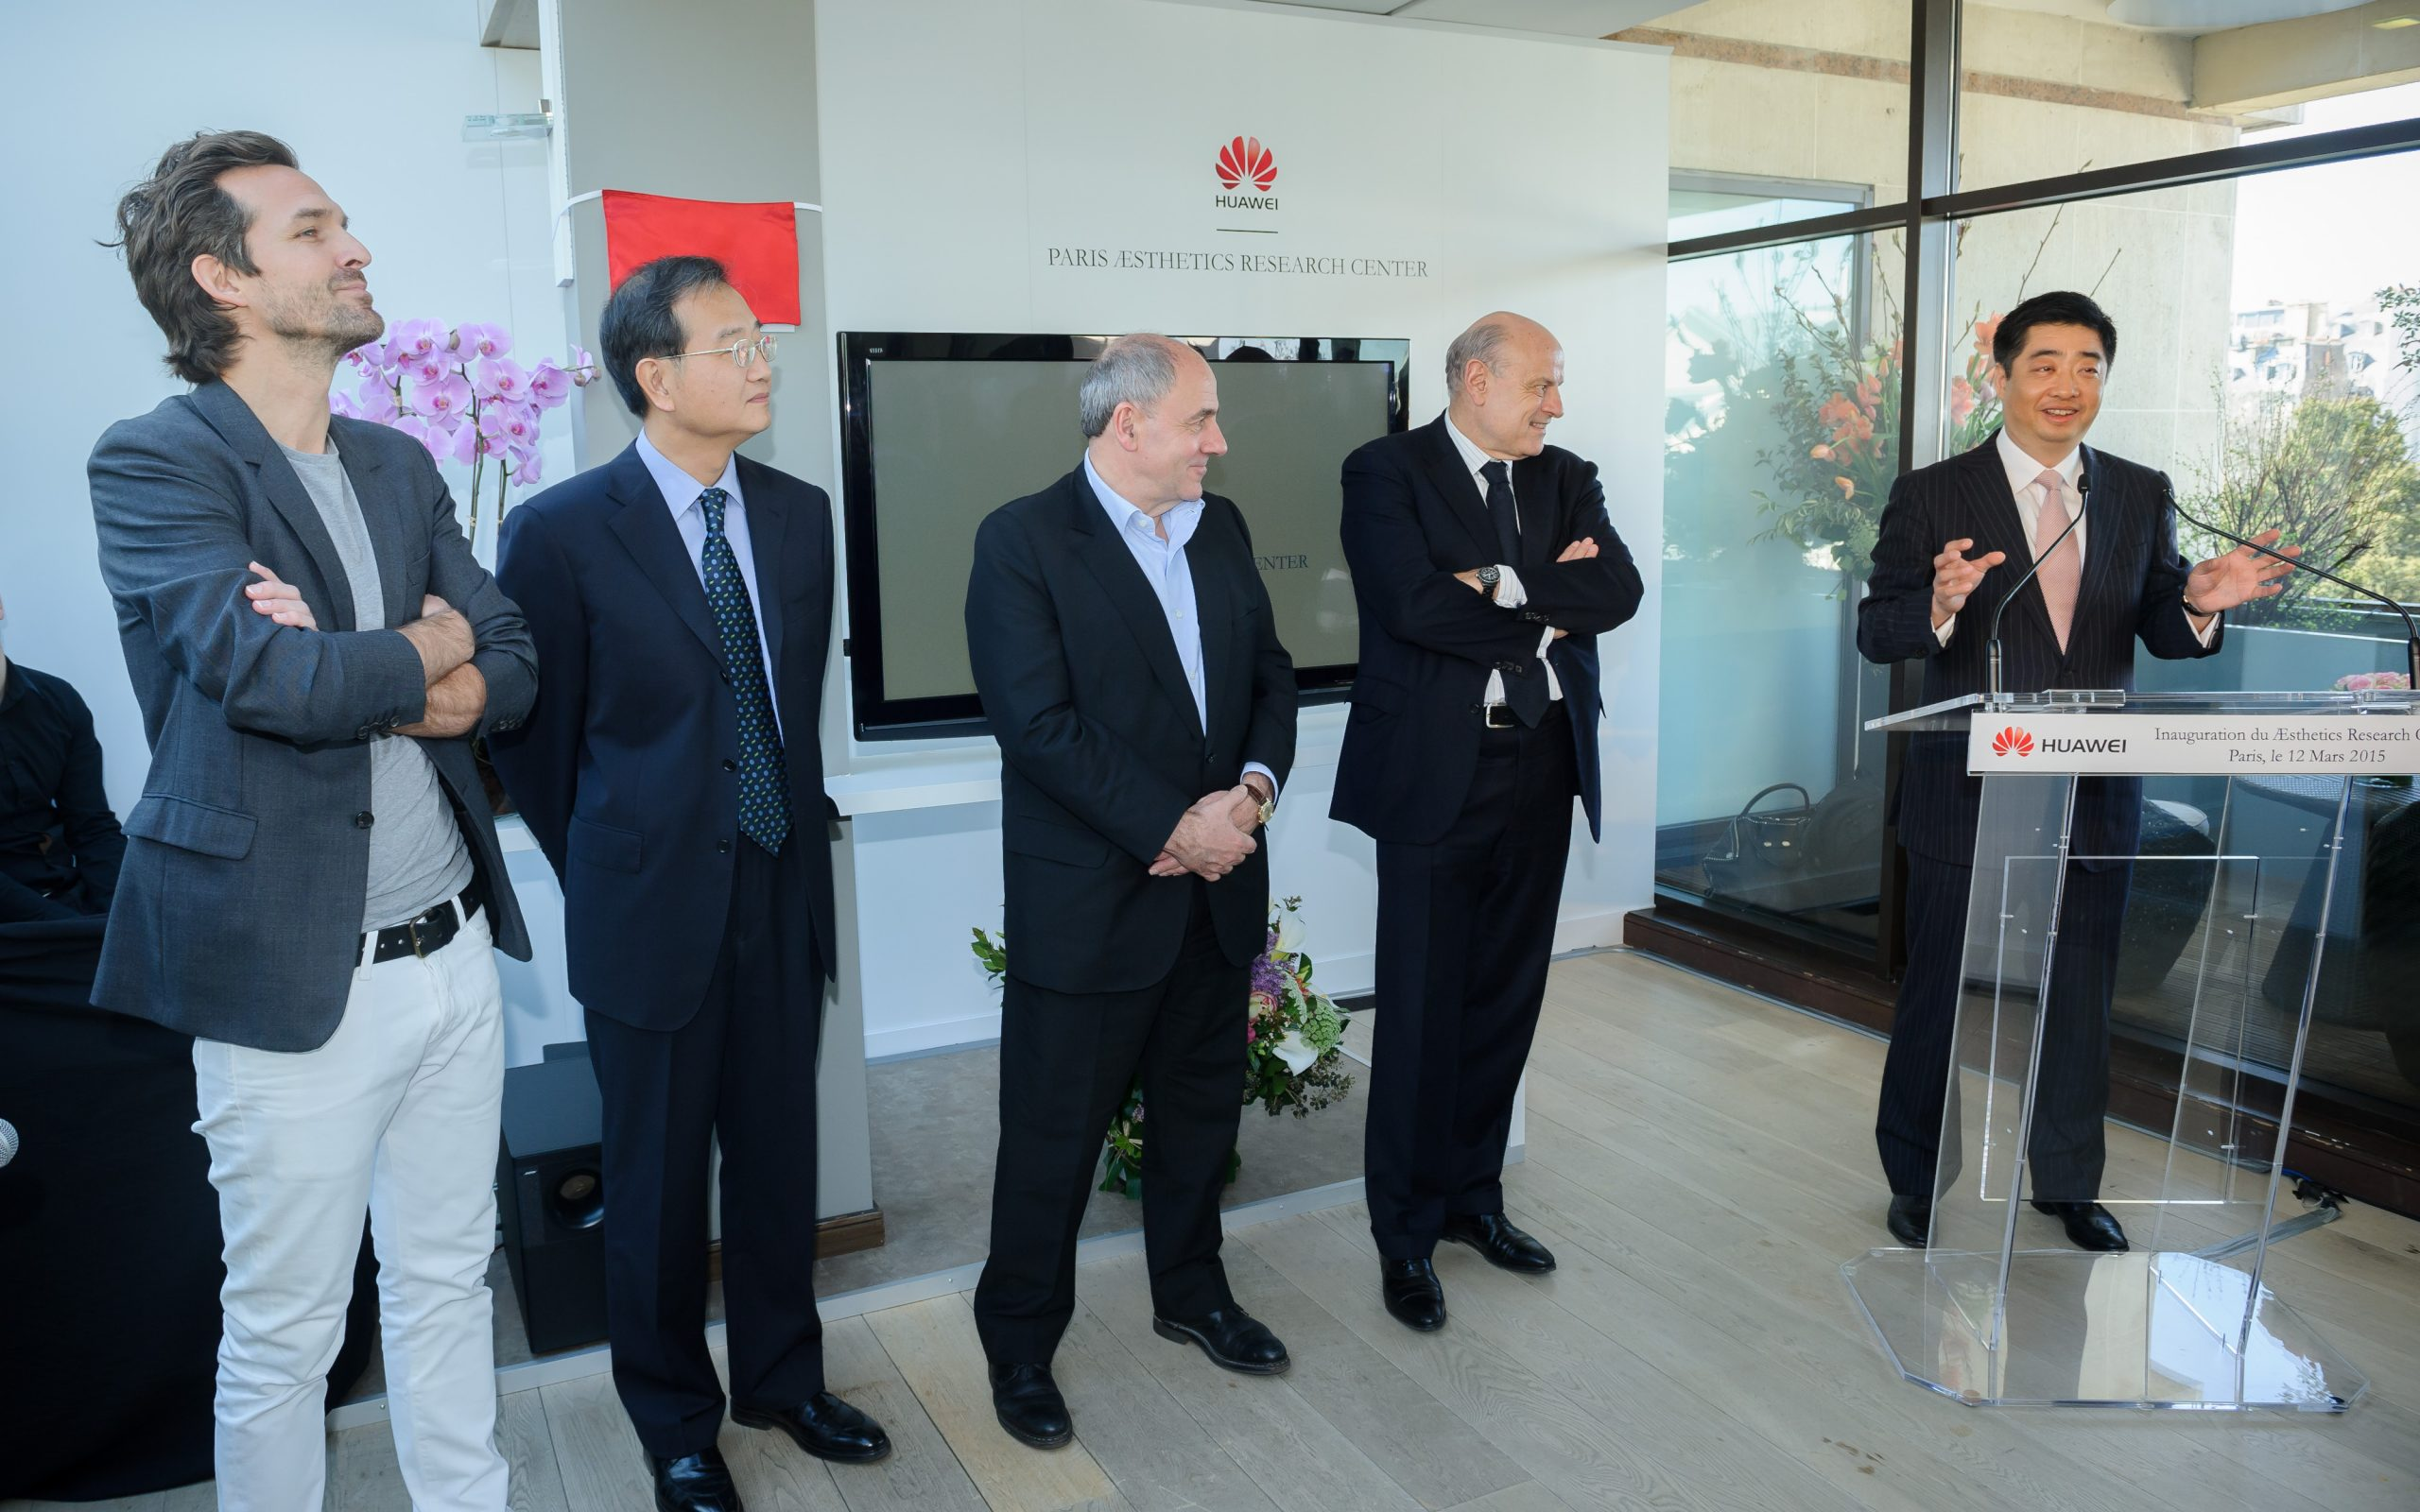 INAUGURATION, AESTHETIC RESEARCH CENTER, HUAWEI, R2 STAND & EVENT